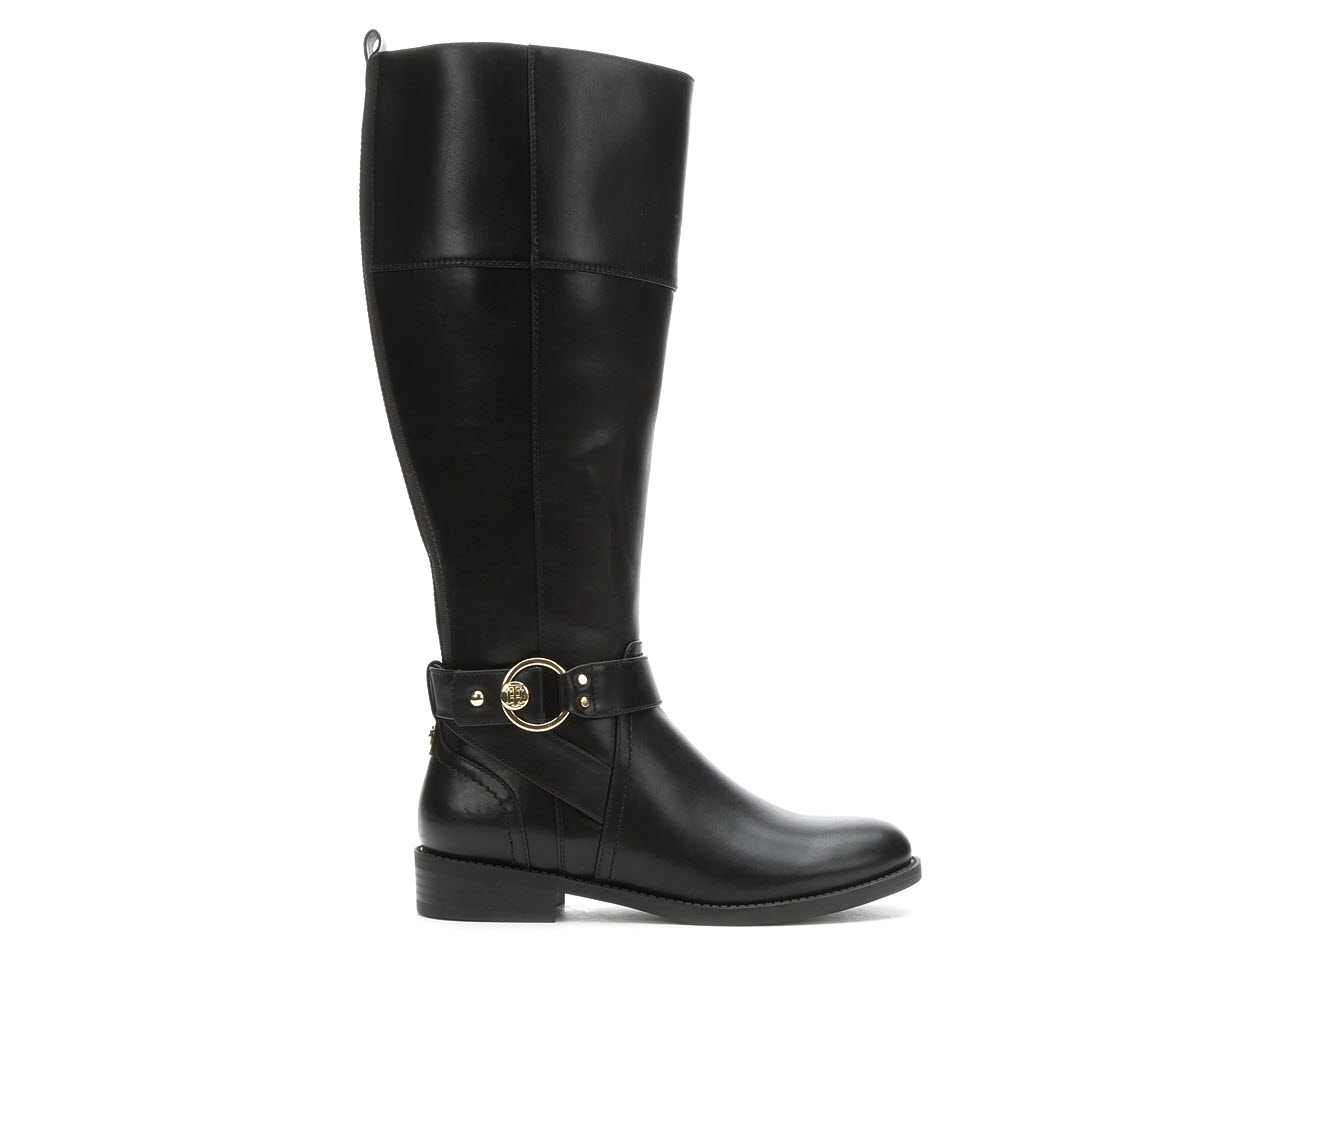 Tommy Hilfiger Isha Wide Width Wide Calf Women's Boots (Black - Faux Leather)